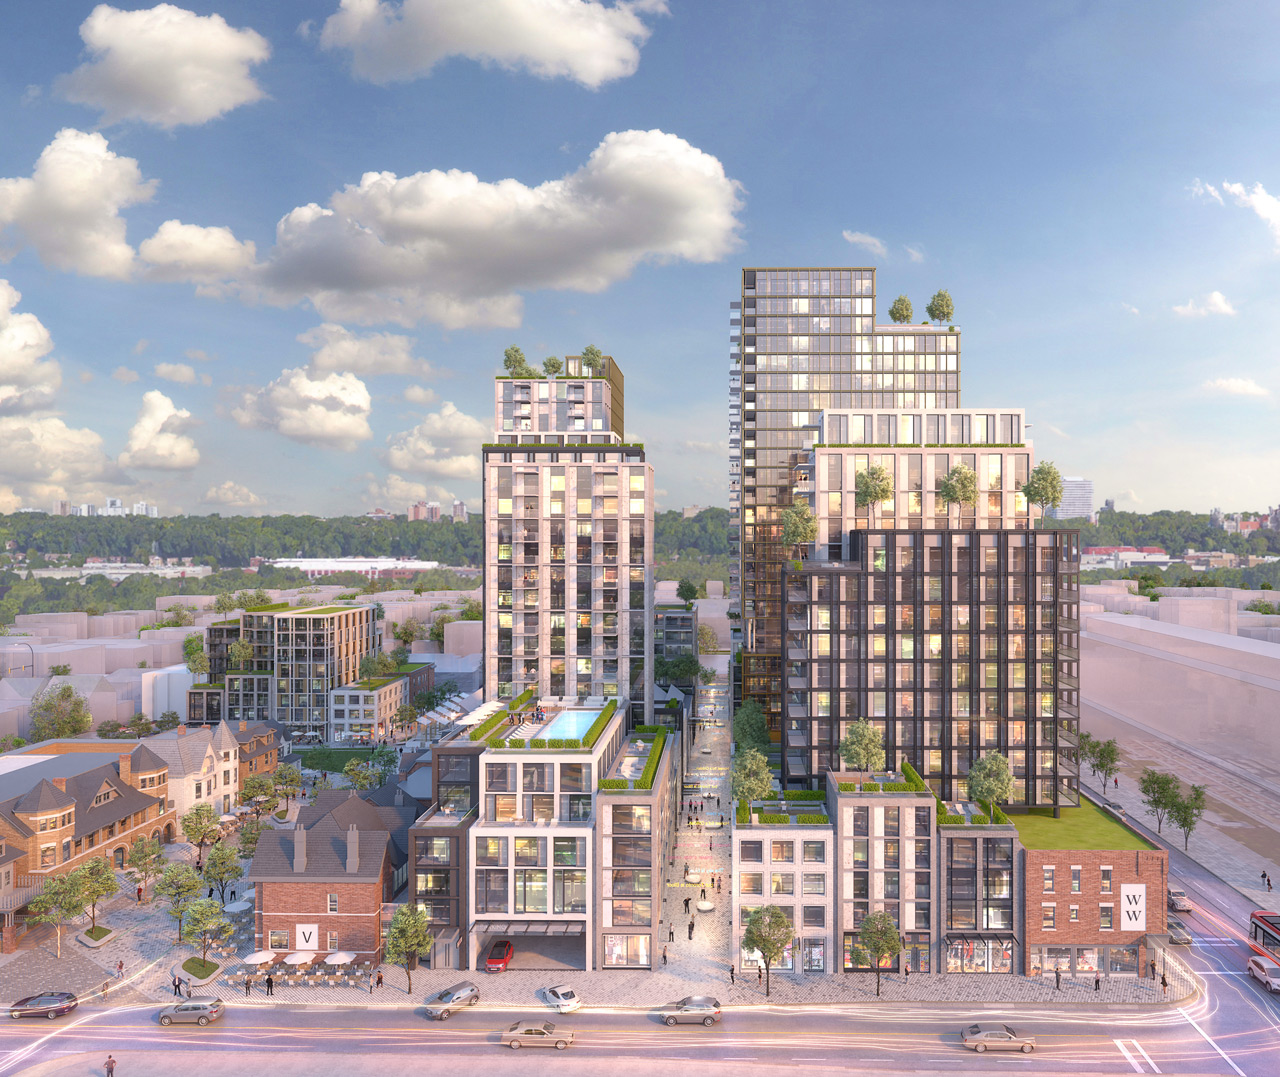 View of the Lennox Street Elevation from the Mirvish Village development.